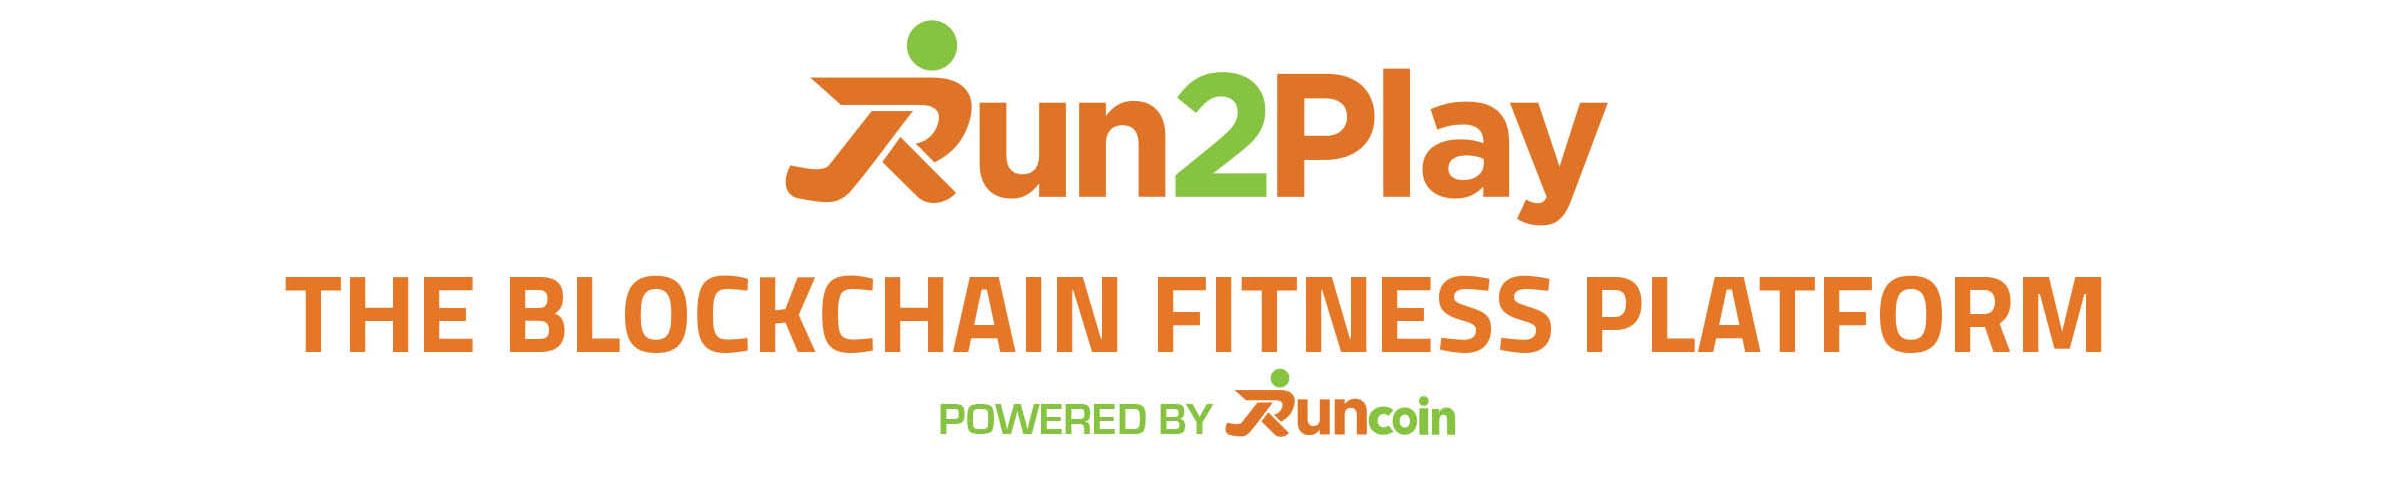 Cover for Run2Play - The Blockchain Fitness Platform powered by RUNcoin campaign